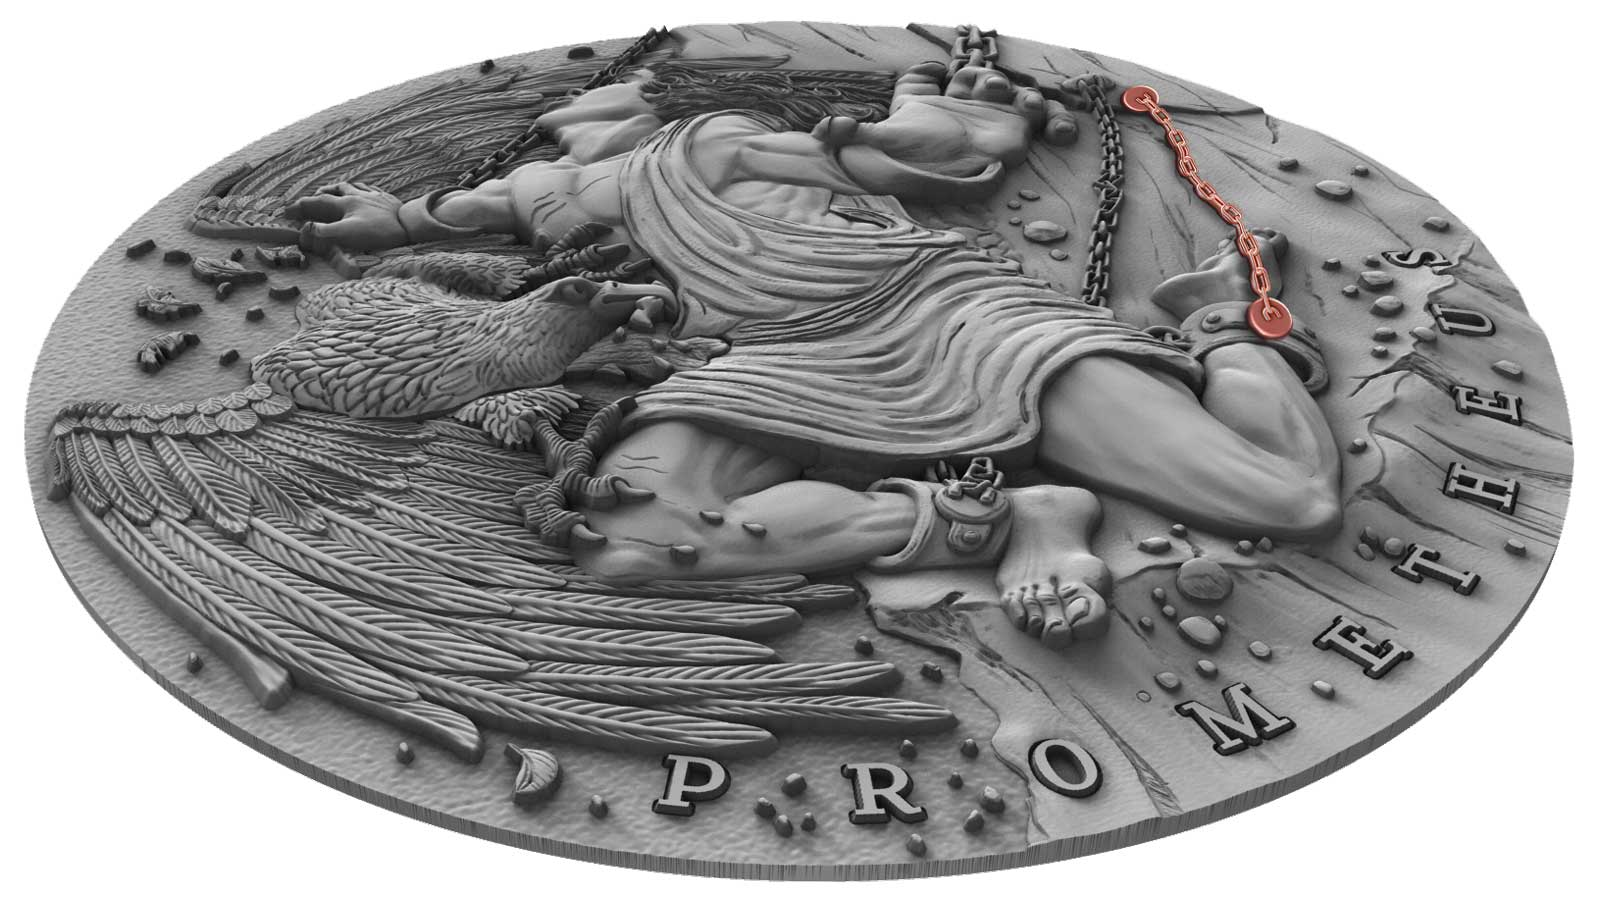 GILDED EDITION 2017 LUNAR YEAR OF THE ROOSTER SILVER COIN 1 OZ ROCKY ZHAO